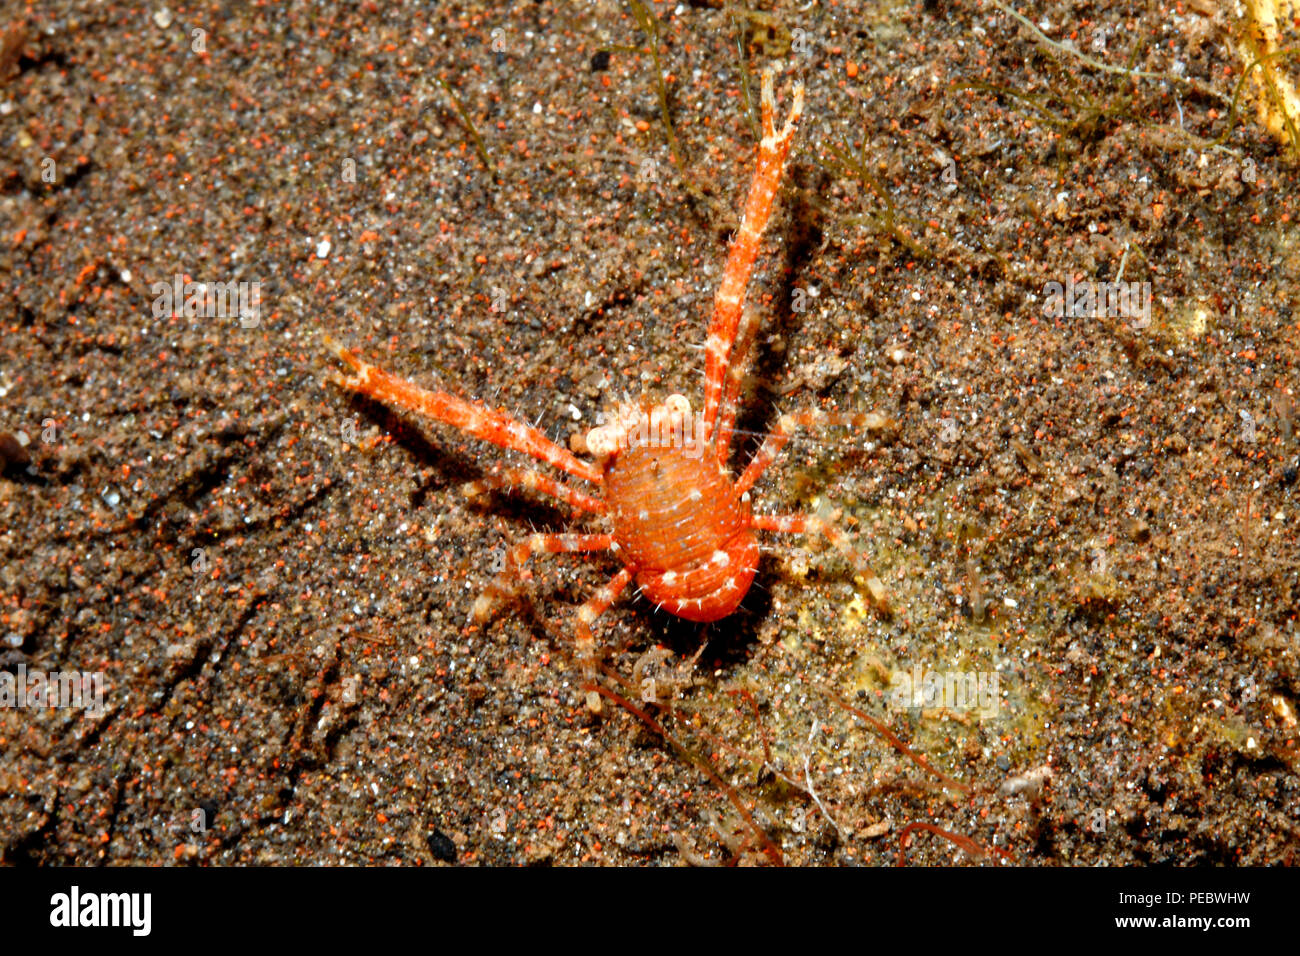 Squat Lobster, Galathea sp. Tulamben, Bali, Indonesia. Bali Sea, Indian Ocean - Stock Image